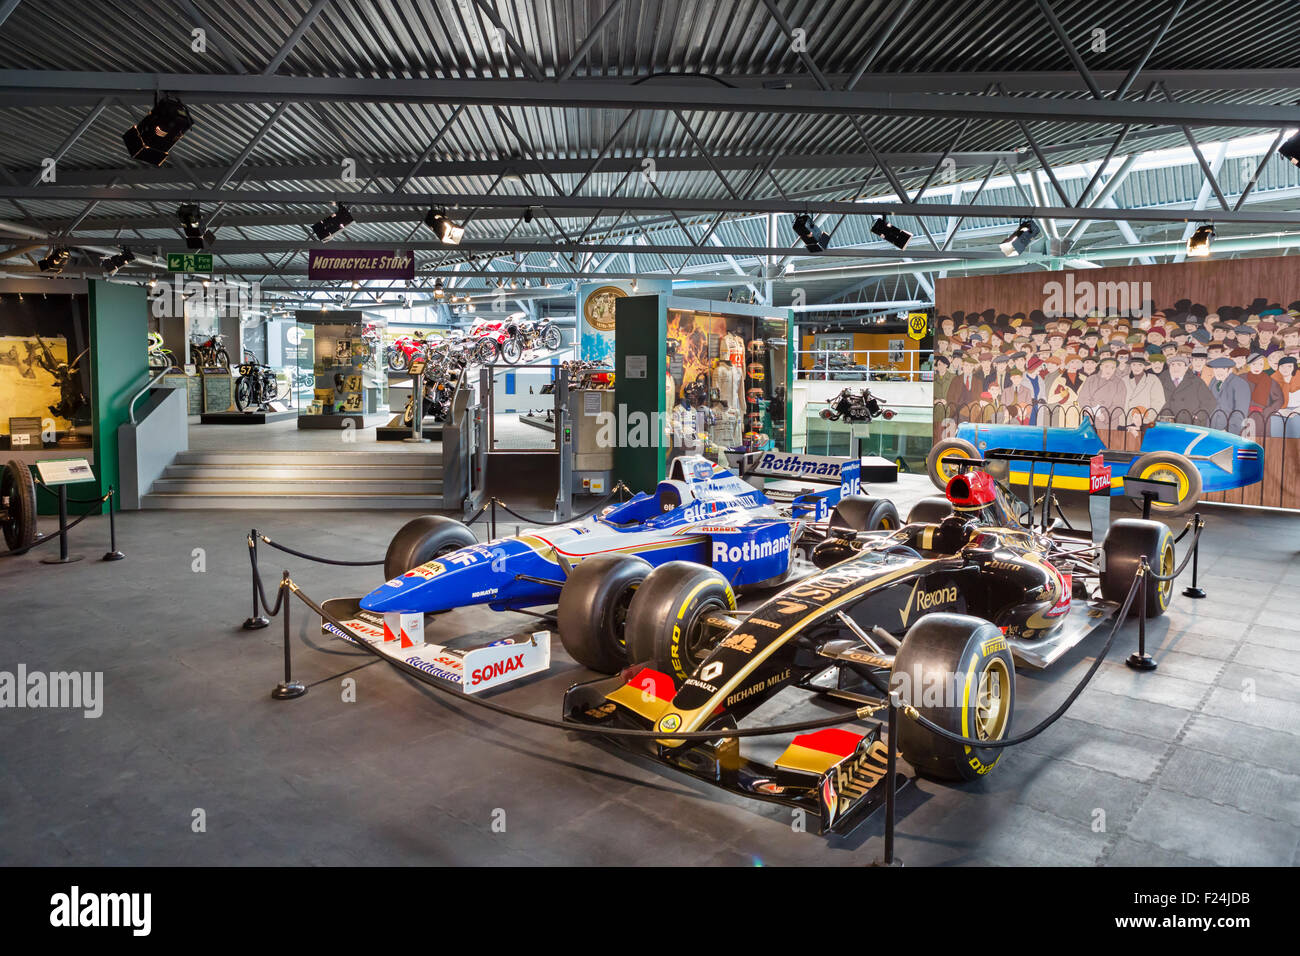 Formel 1-Rennwagen auf dem Display an das National Motor Museum in Beaulieu, Hampshire, England UK Stockbild